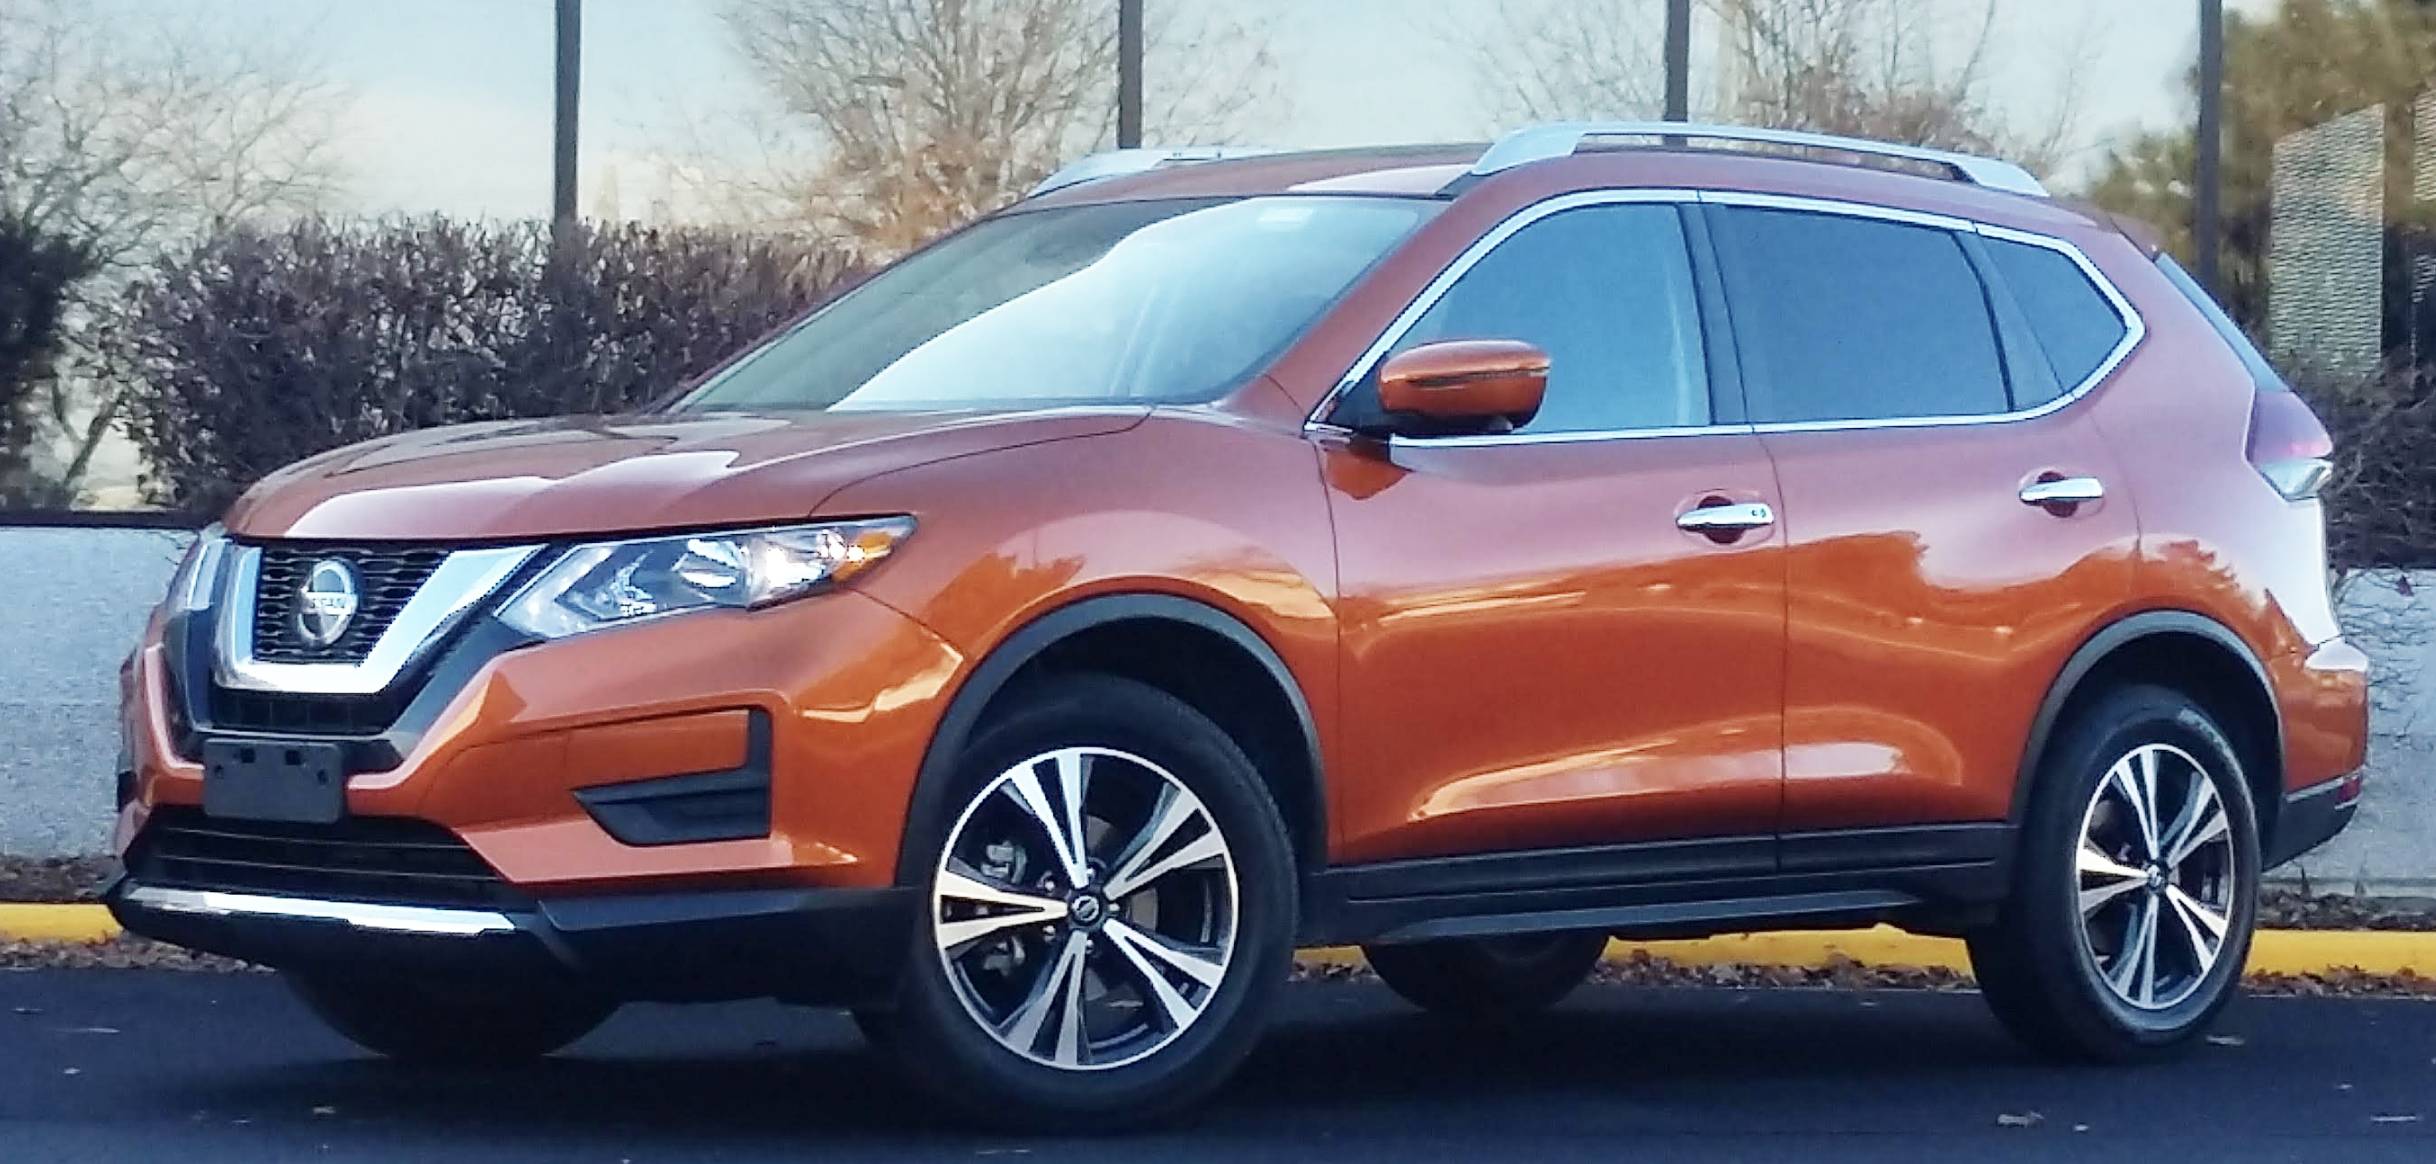 2019 Nissan Rogue SV AWD The Daily Drive | Consumer Guide®